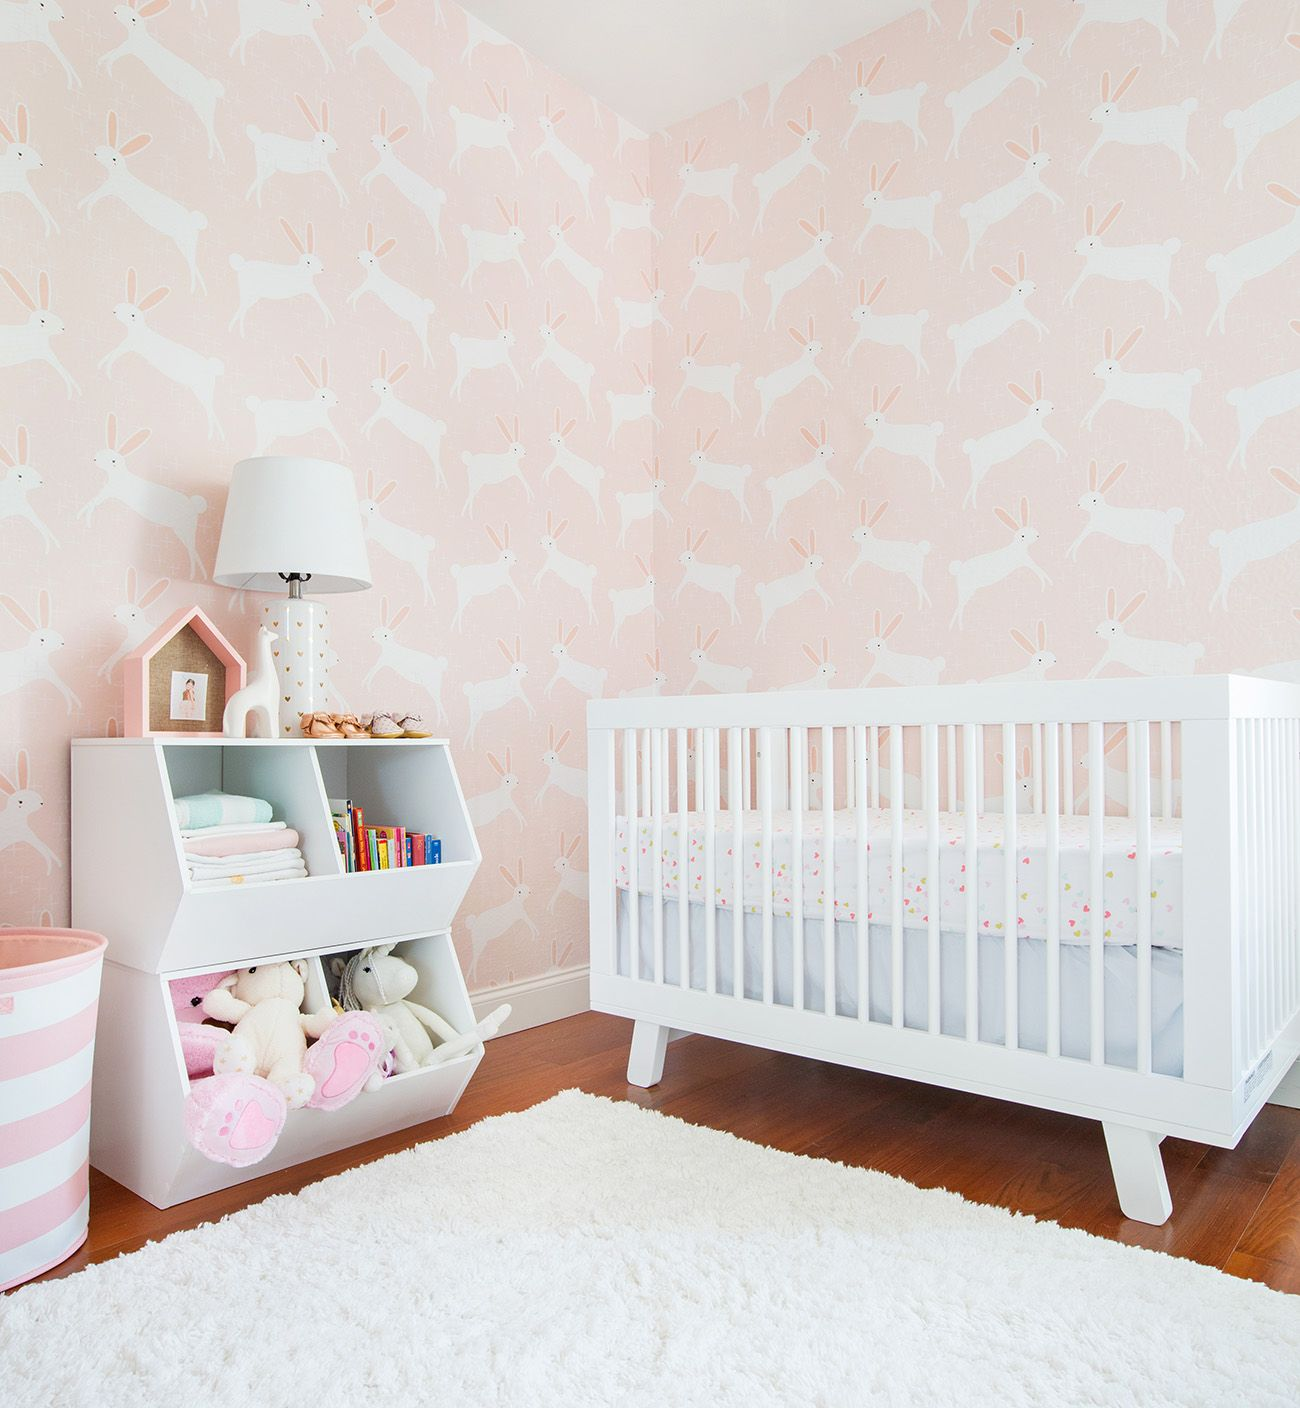 Angel Themed Design For A Baby Girl S Nursery: A Pink Bunny Nursery With Target & Emily Henderson